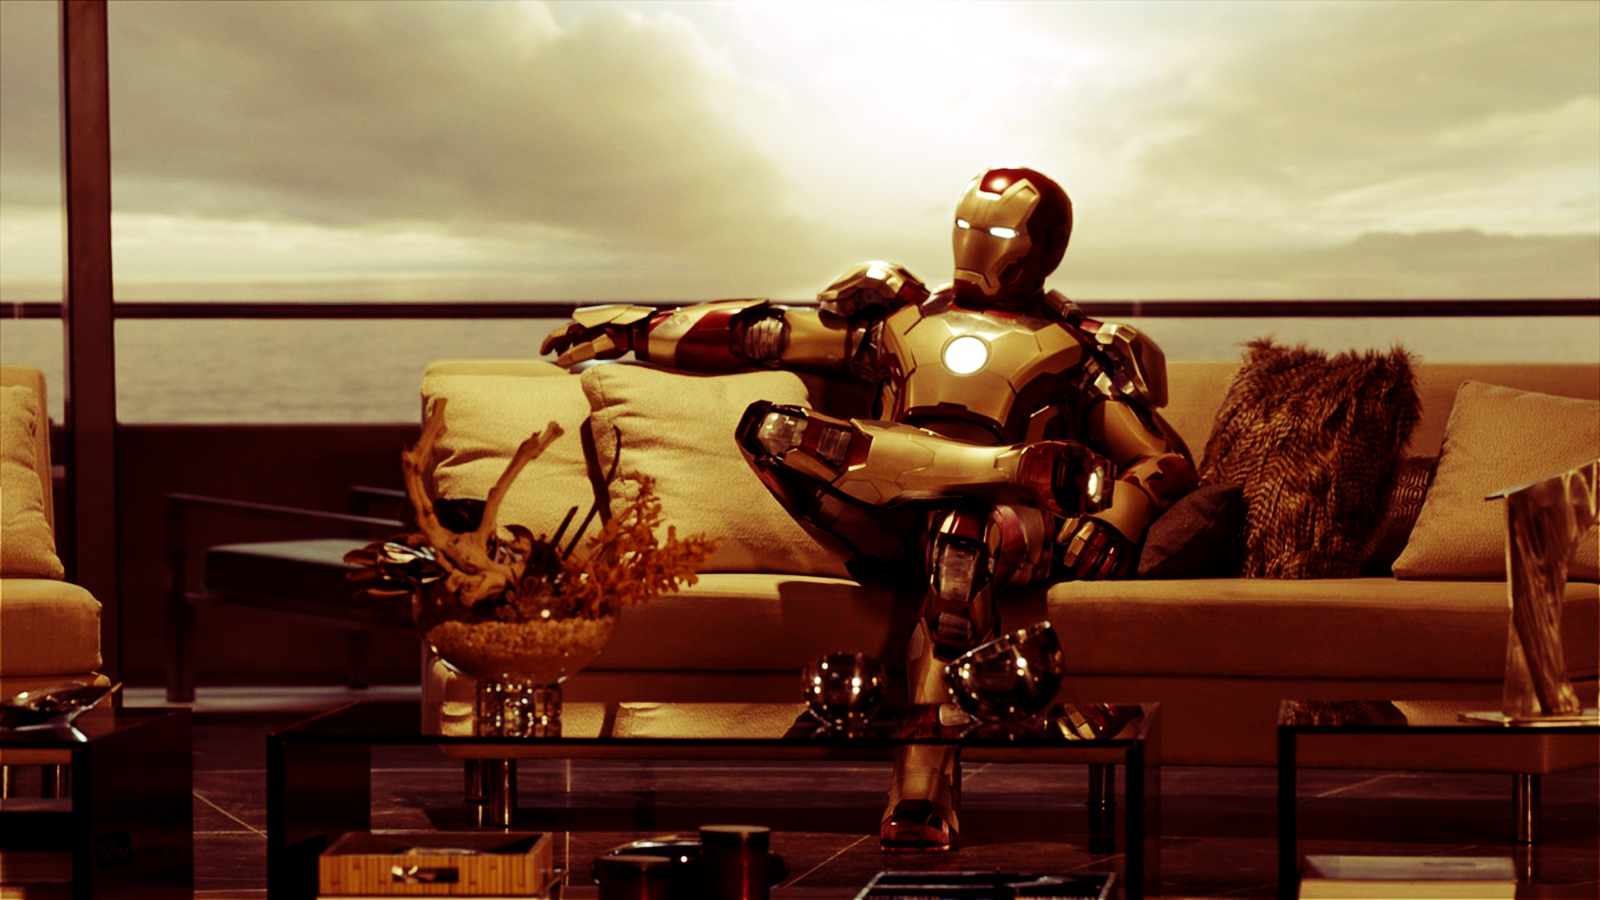 Iron Man 3 Movie HD Wallpapers and Poster Download Wallpapers 1600x900